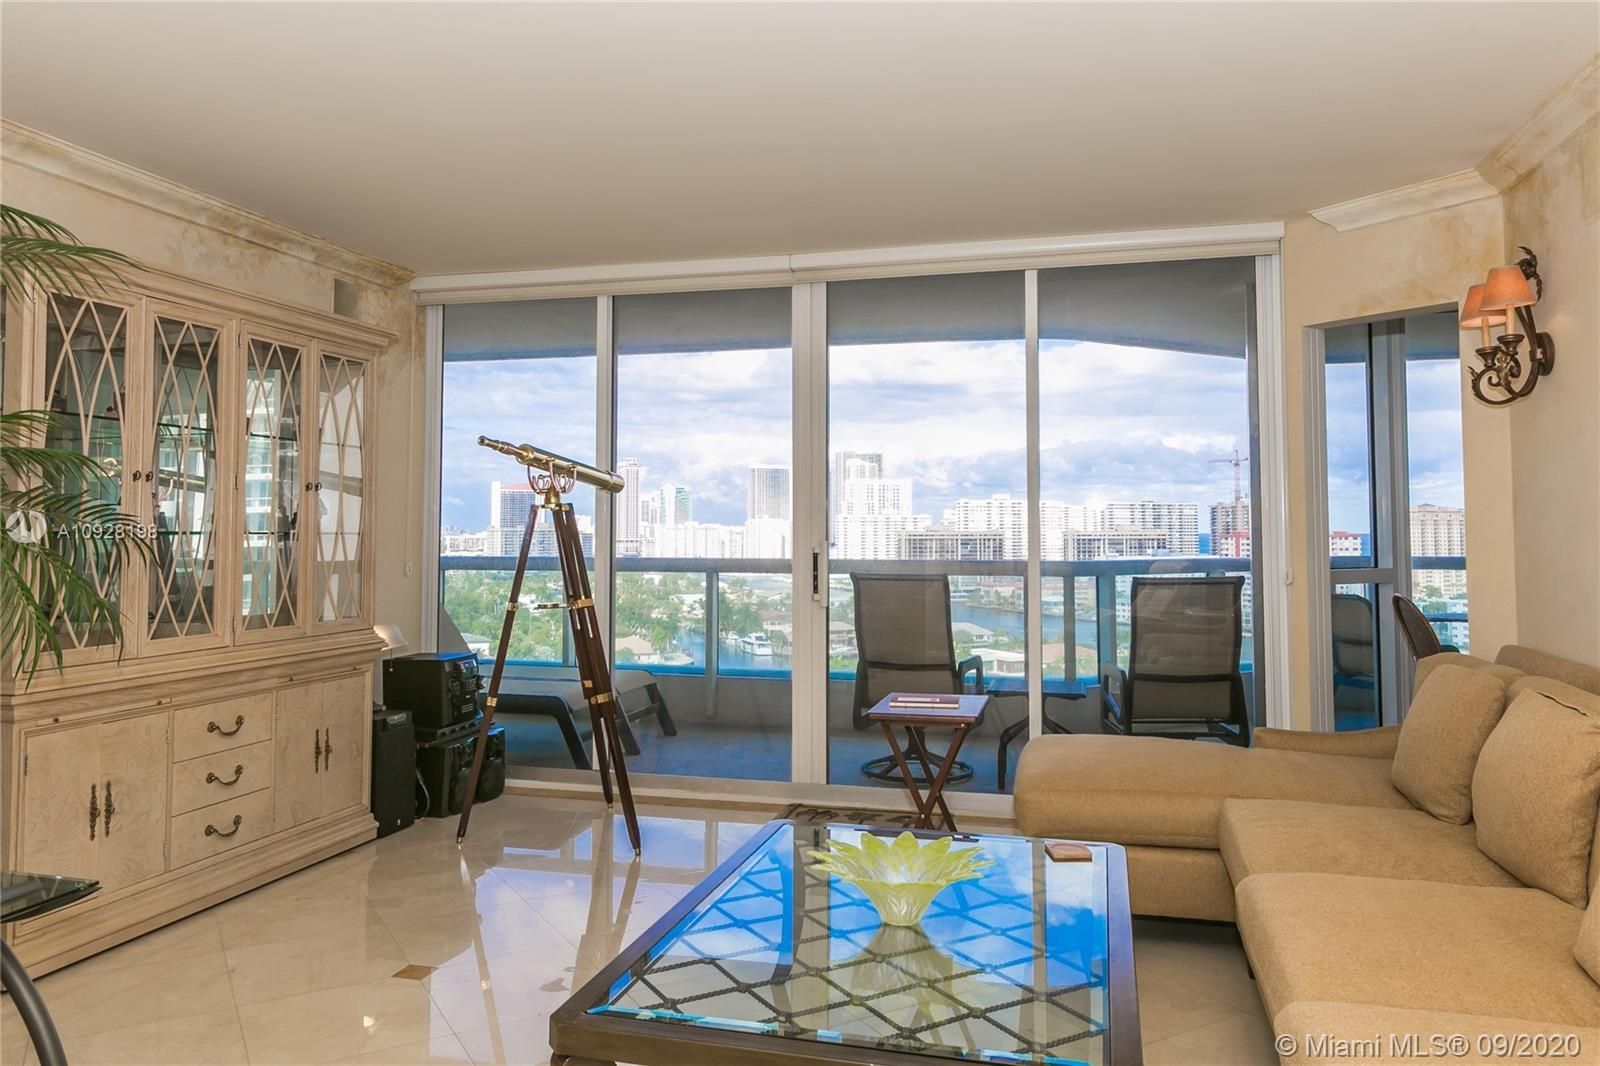 Exquisite condo located at the exclusive North Tower at The Point. Spacious and full of natural ligh